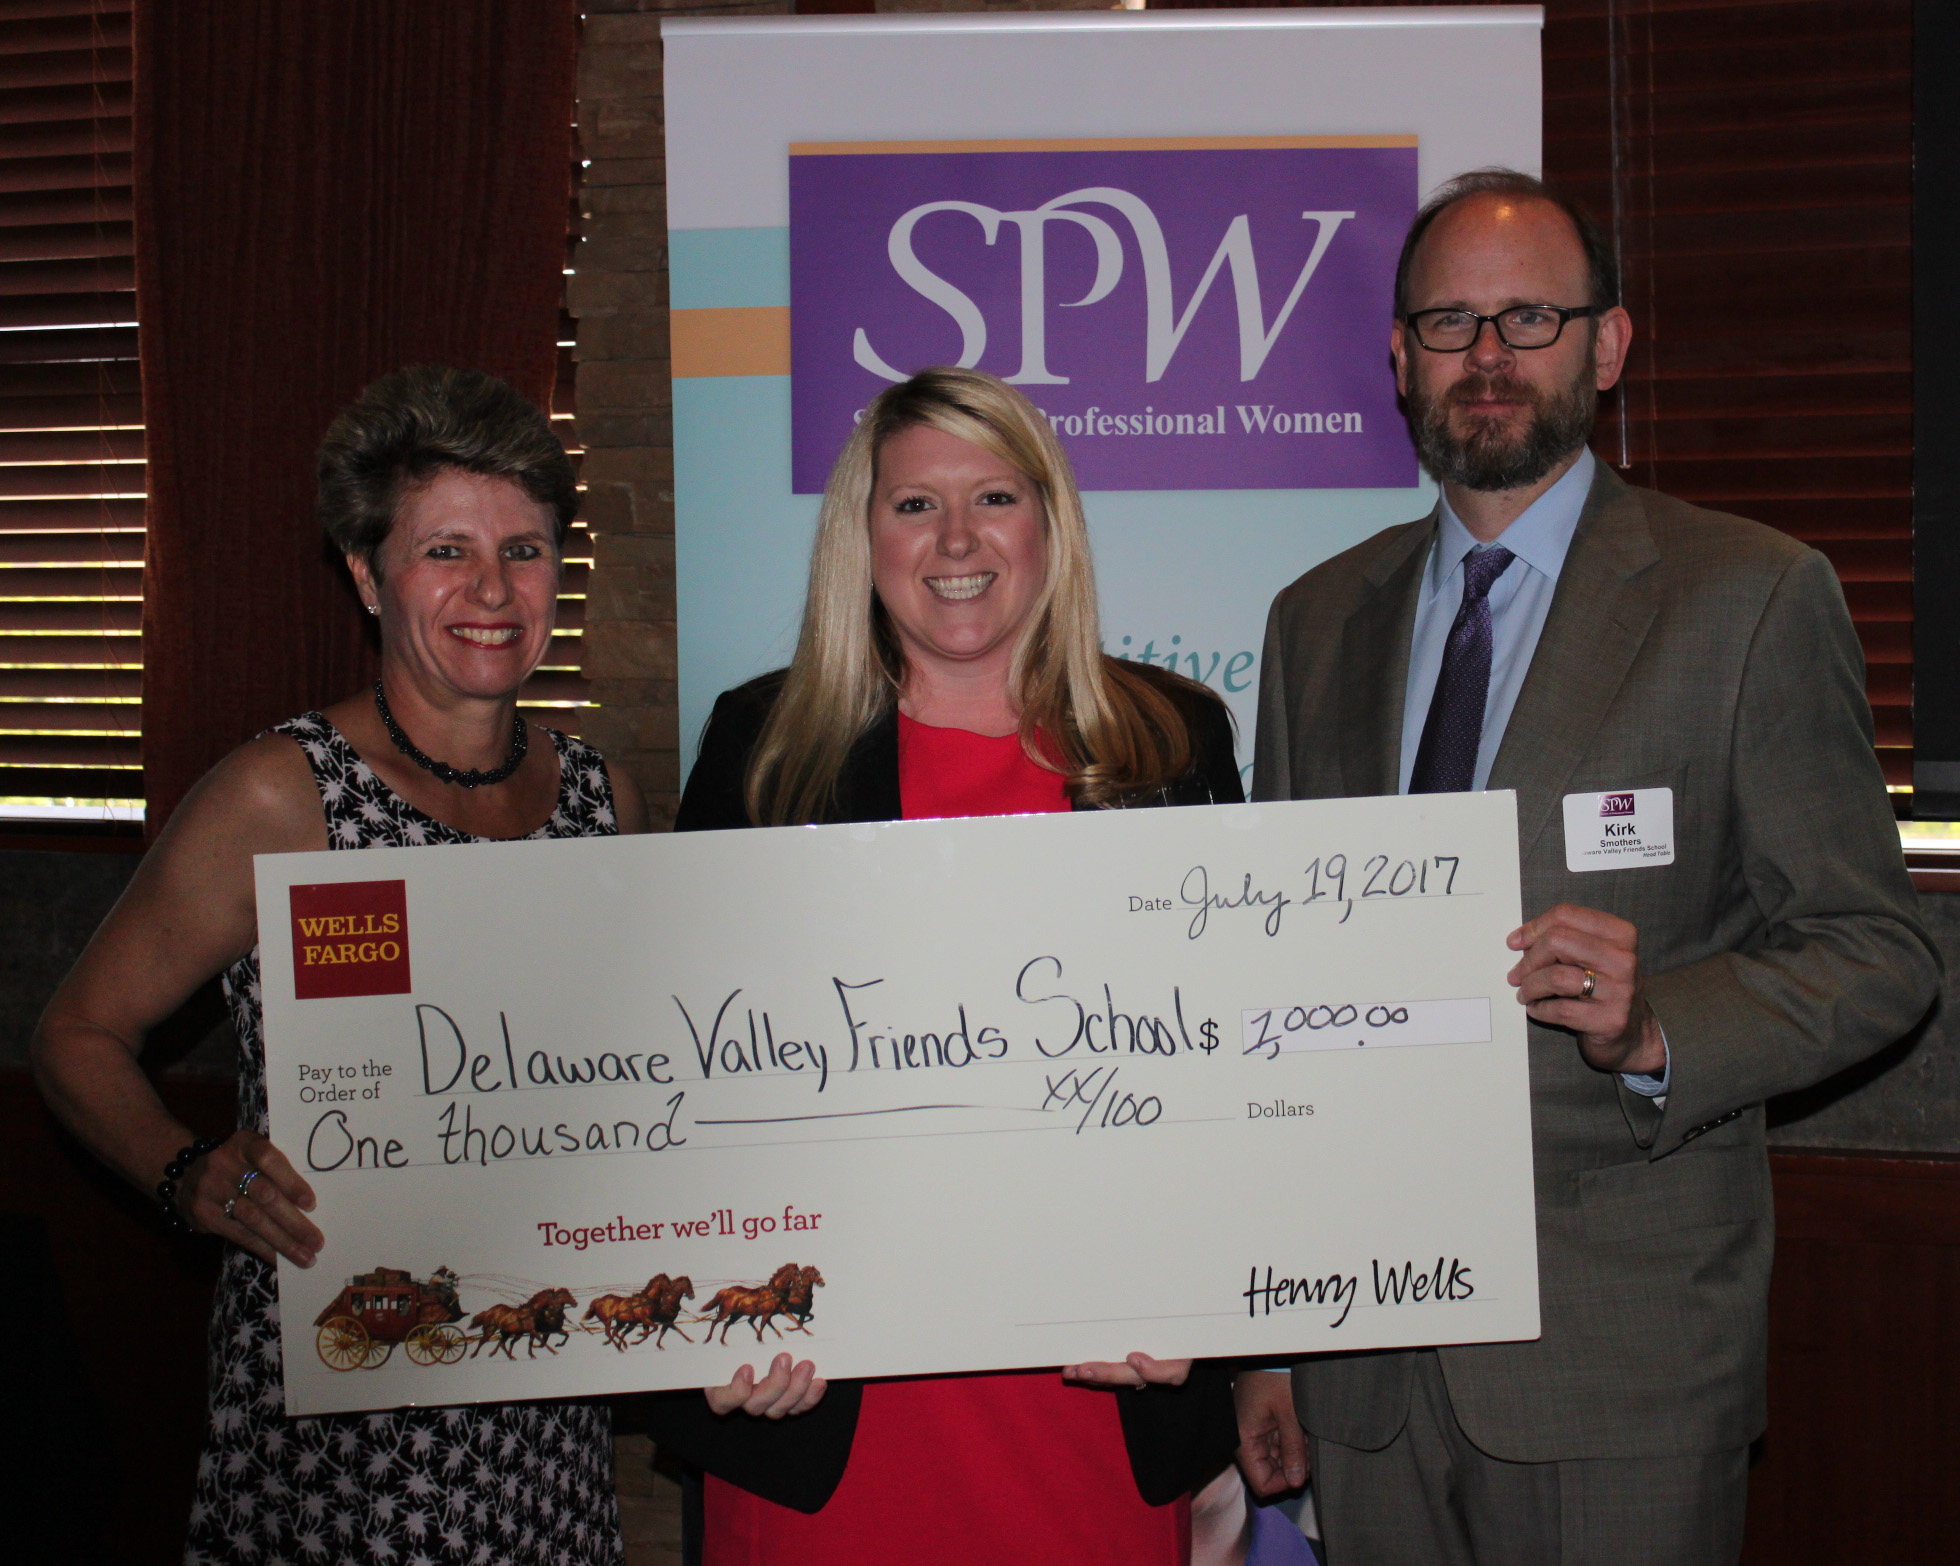 Featured Non-Profit Delaware Valley Friends School